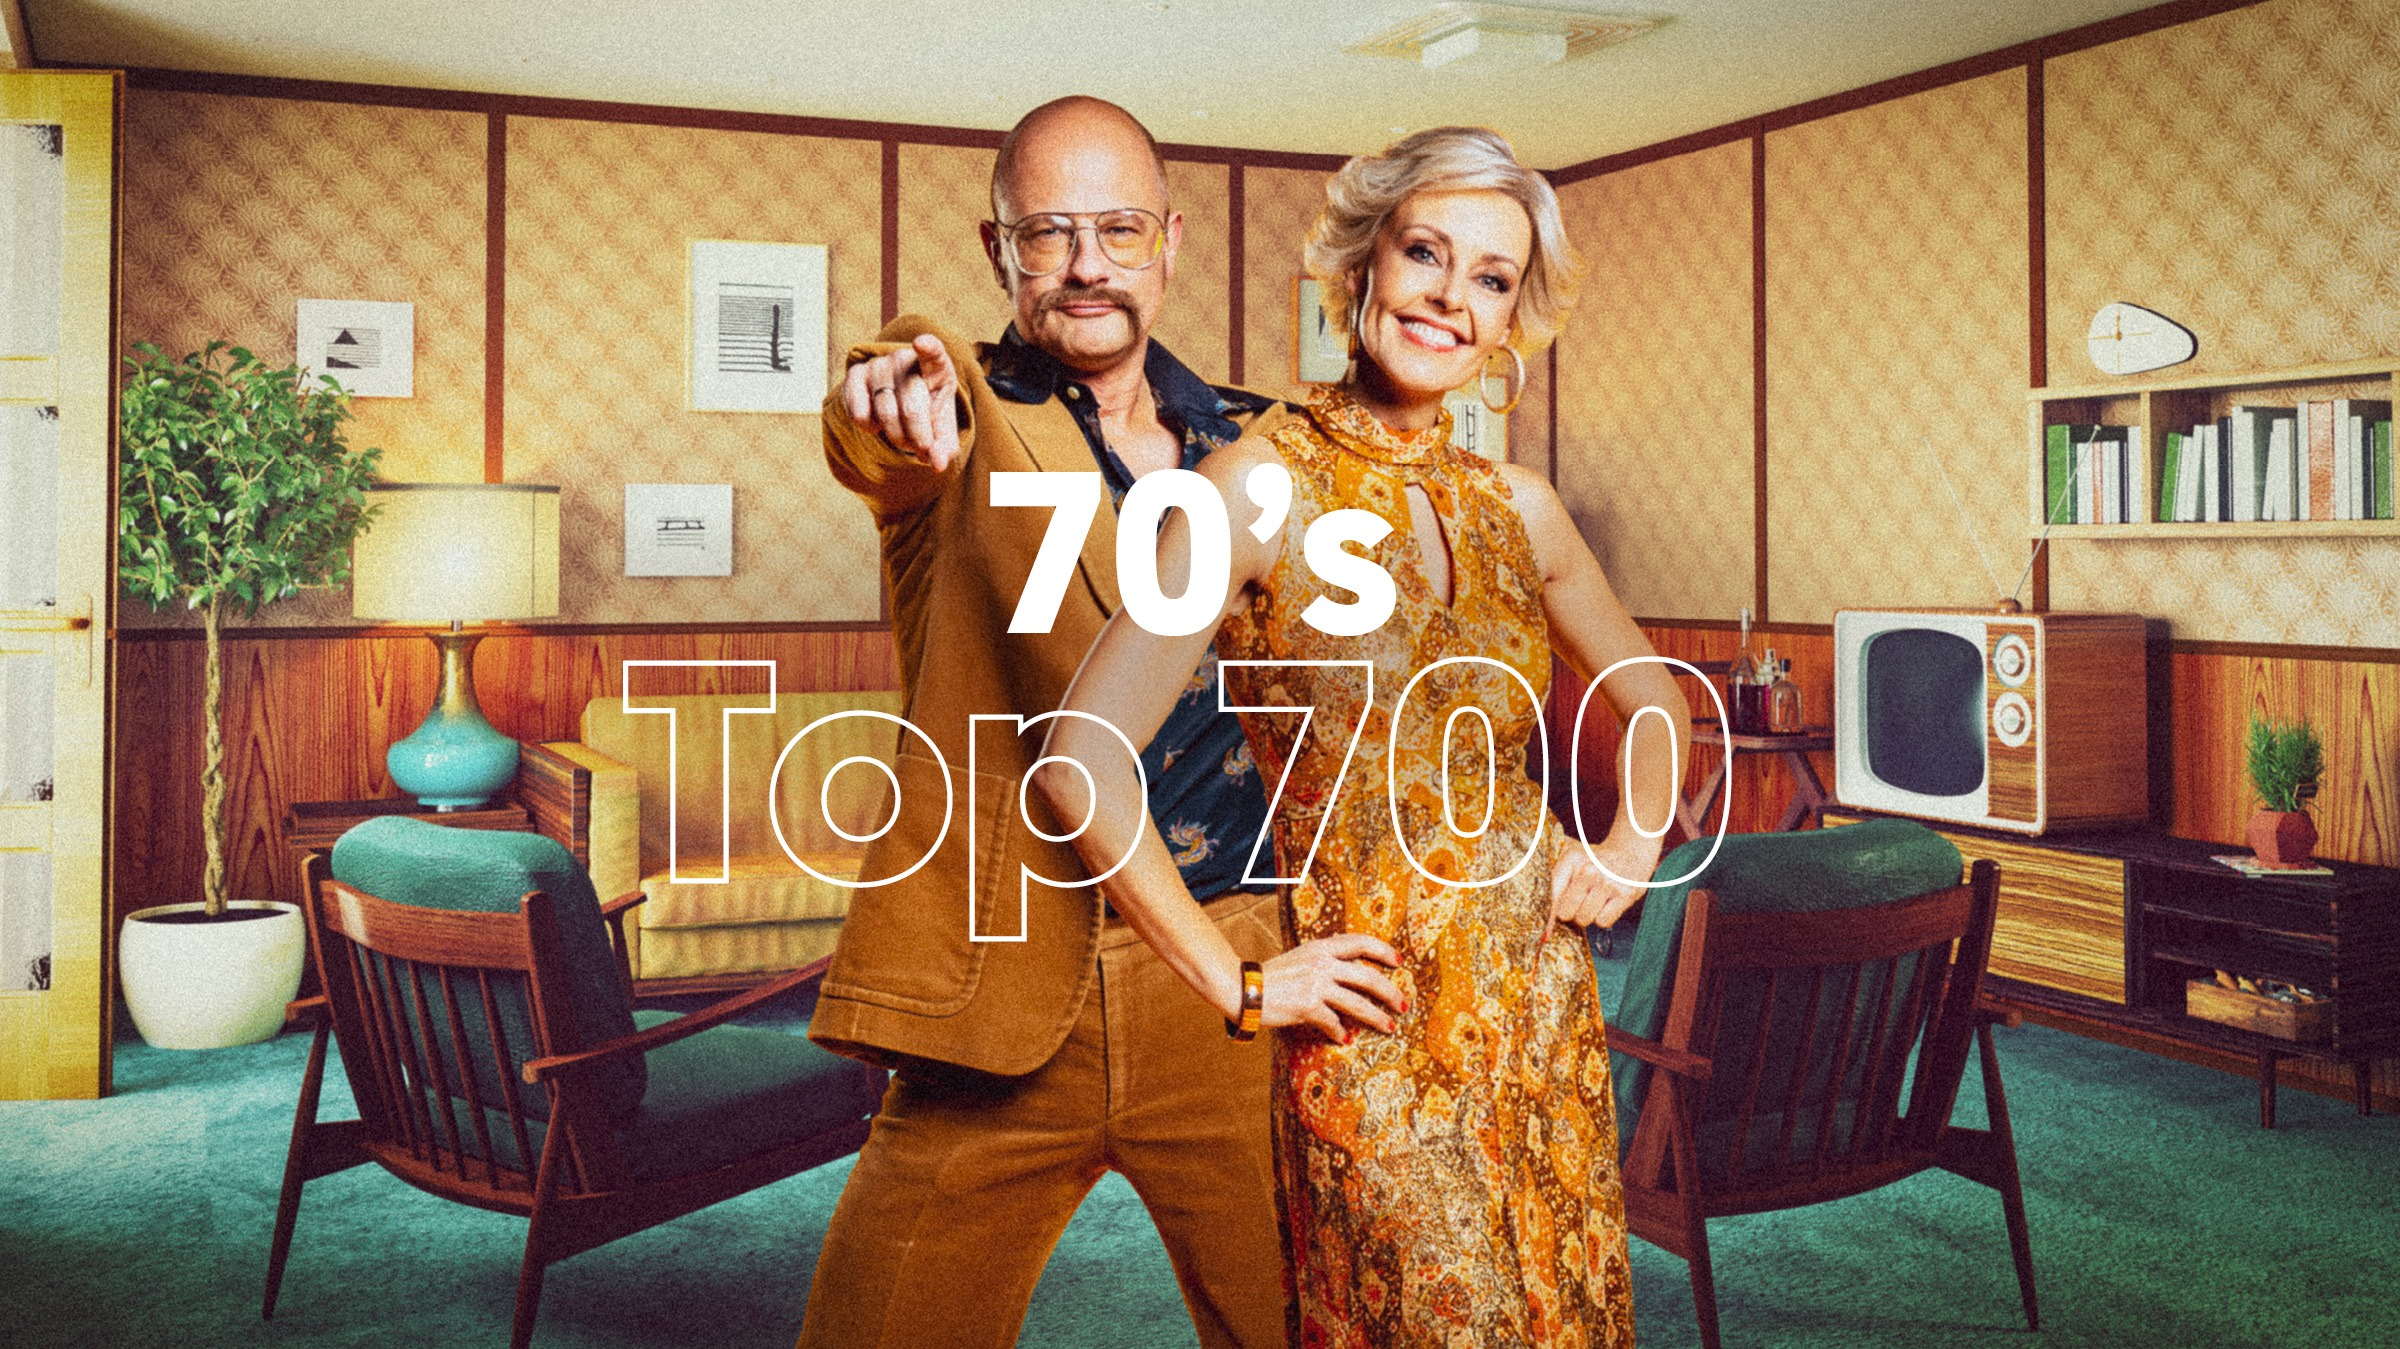 70s top700 sitevisual2